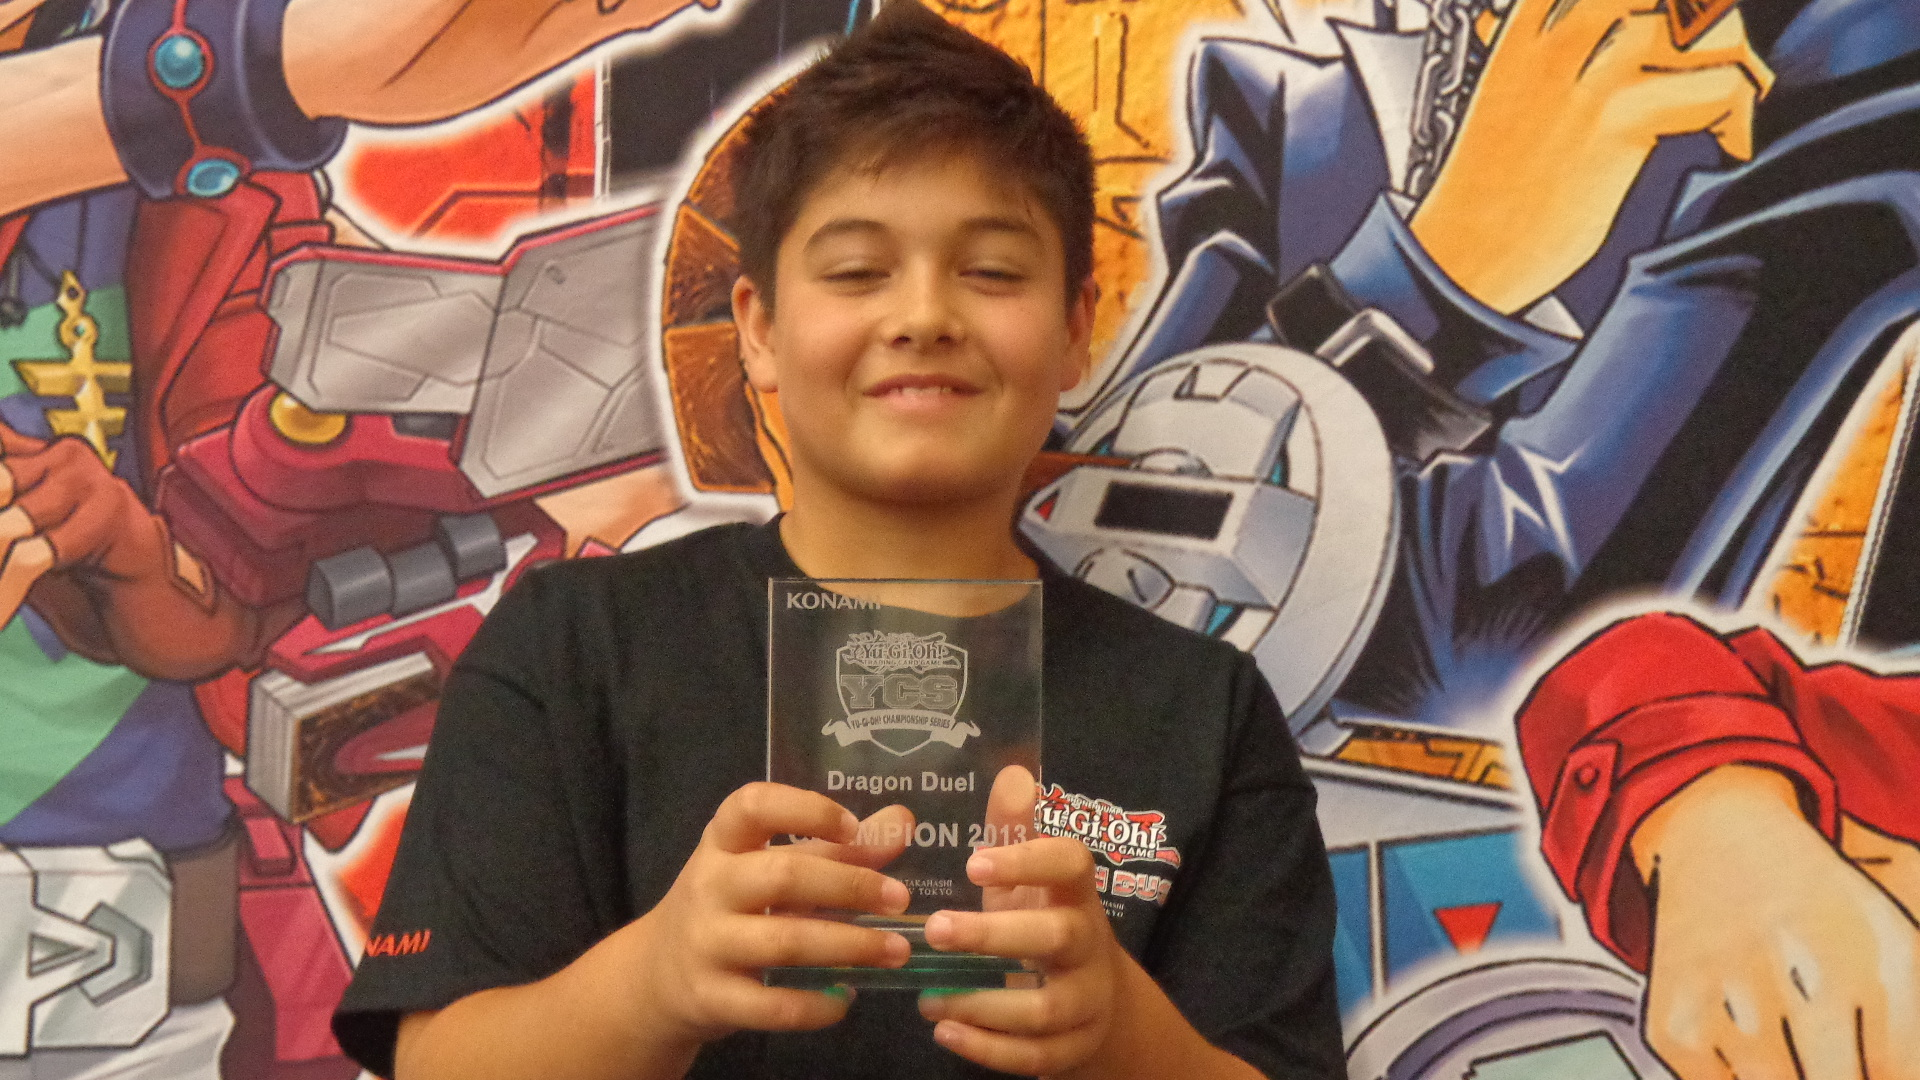 Nolan Galvao - Dragon Duel Champion